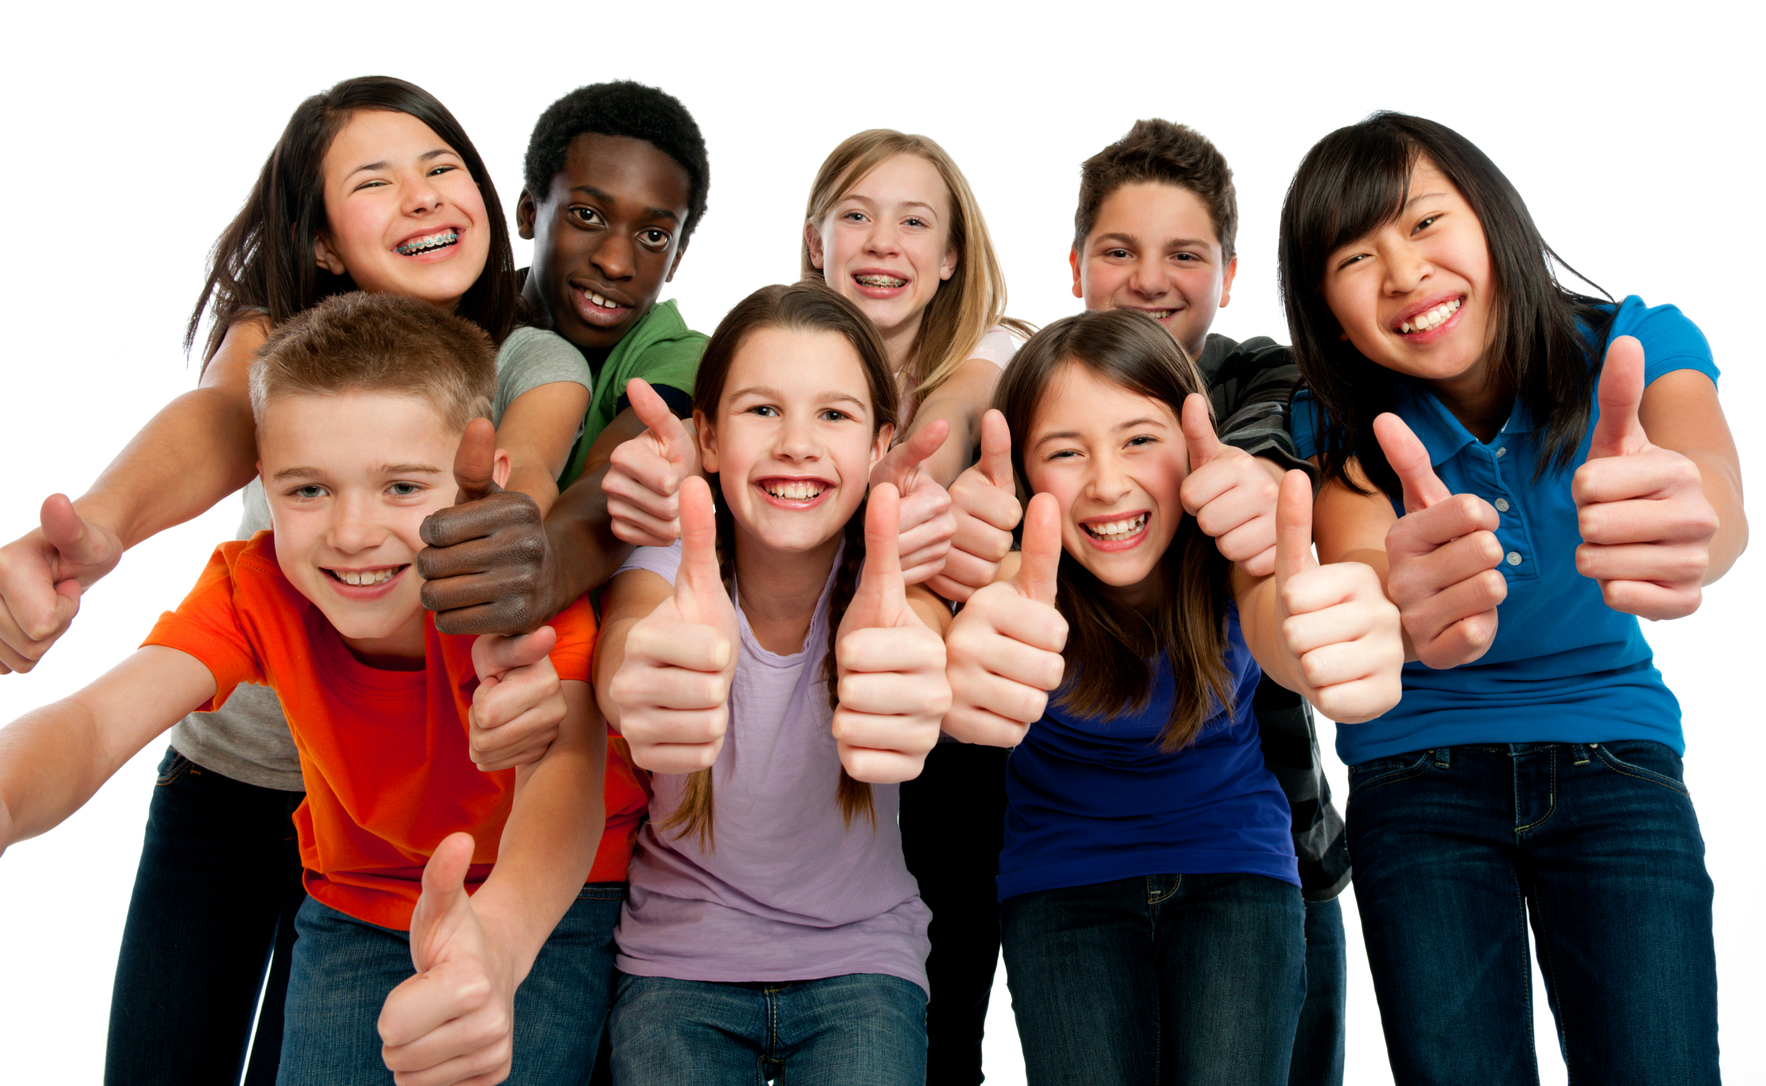 A diverse group of tweens giving thumbs up.